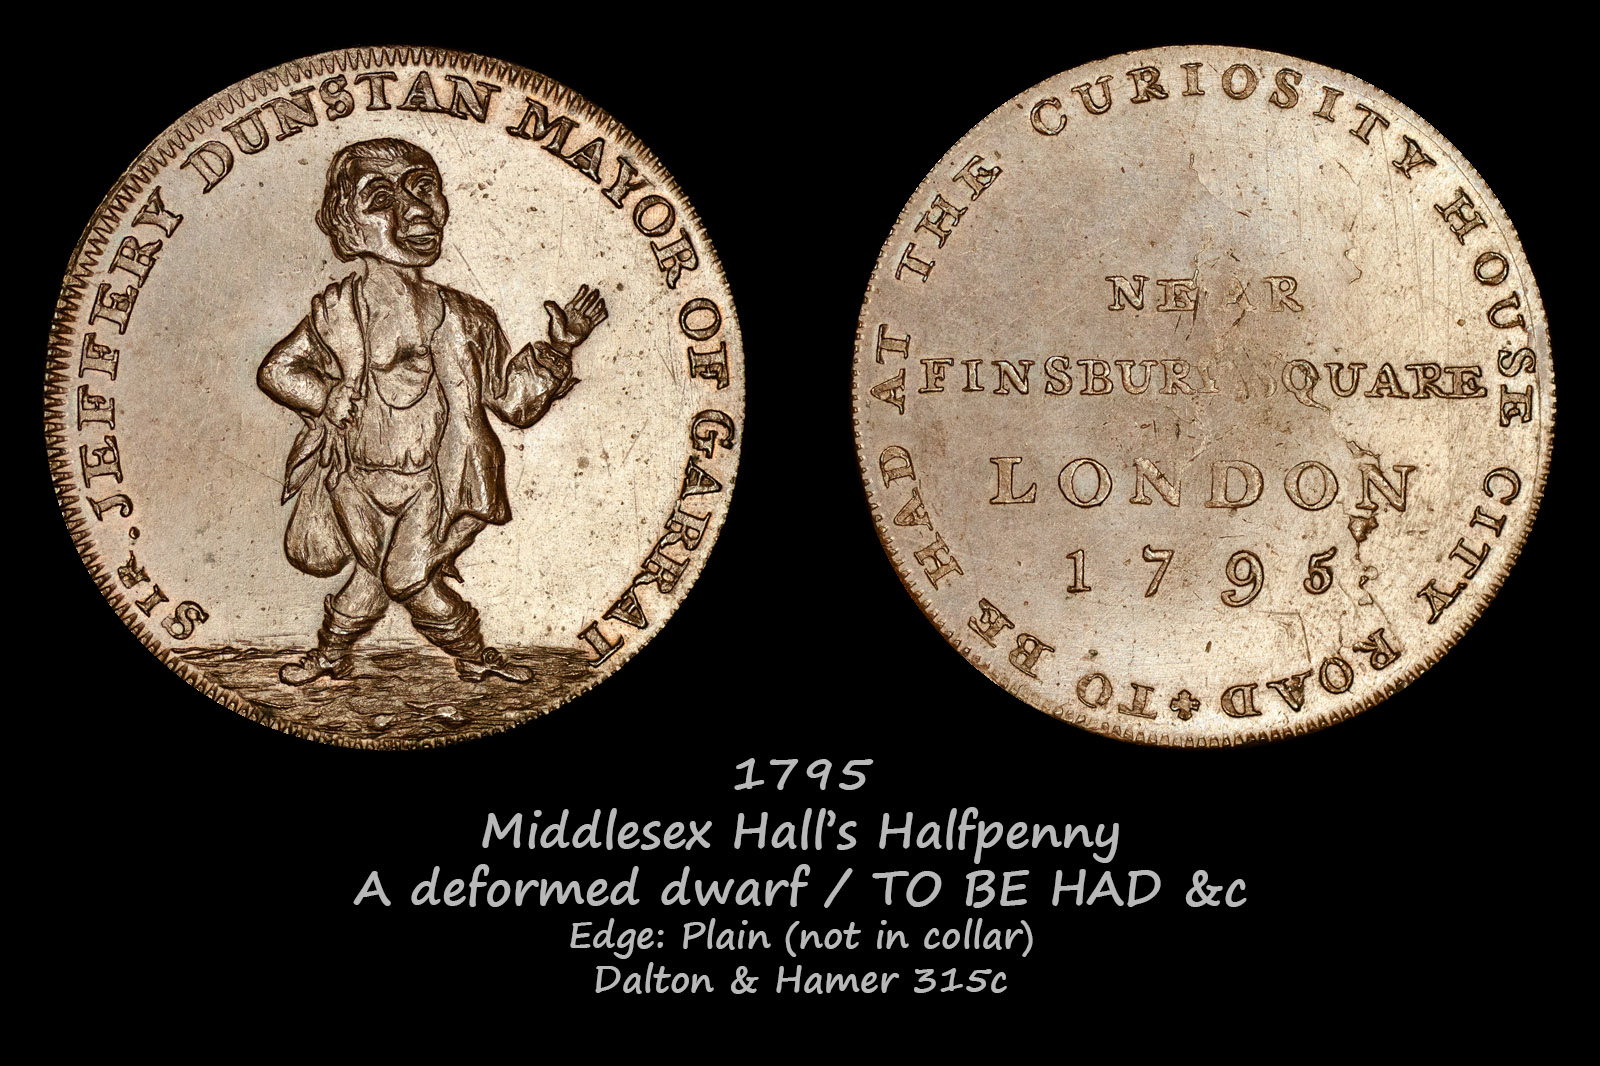 Middlesex Hall's Halfpenny D&H315c